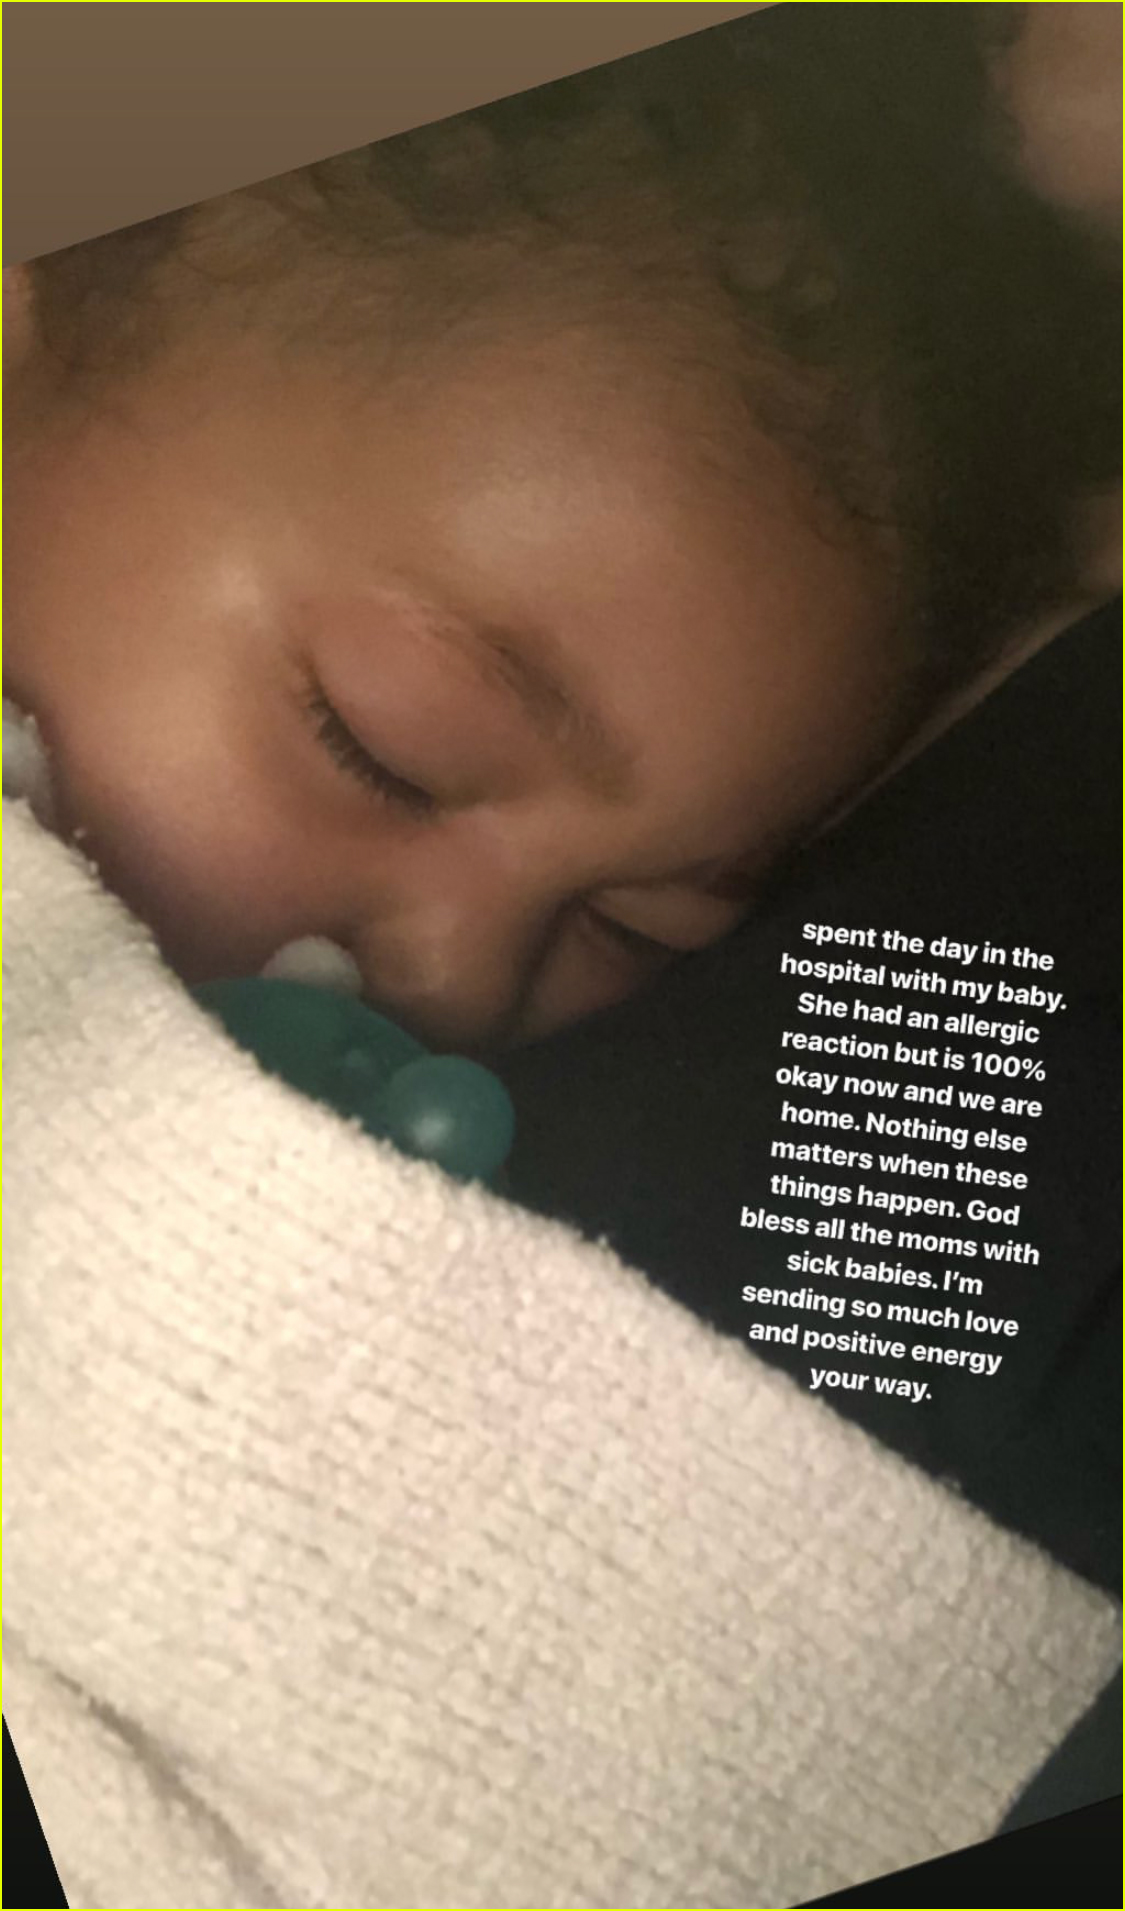 kylie jenner daughter stormi hospitalized for allergic reaction4302156